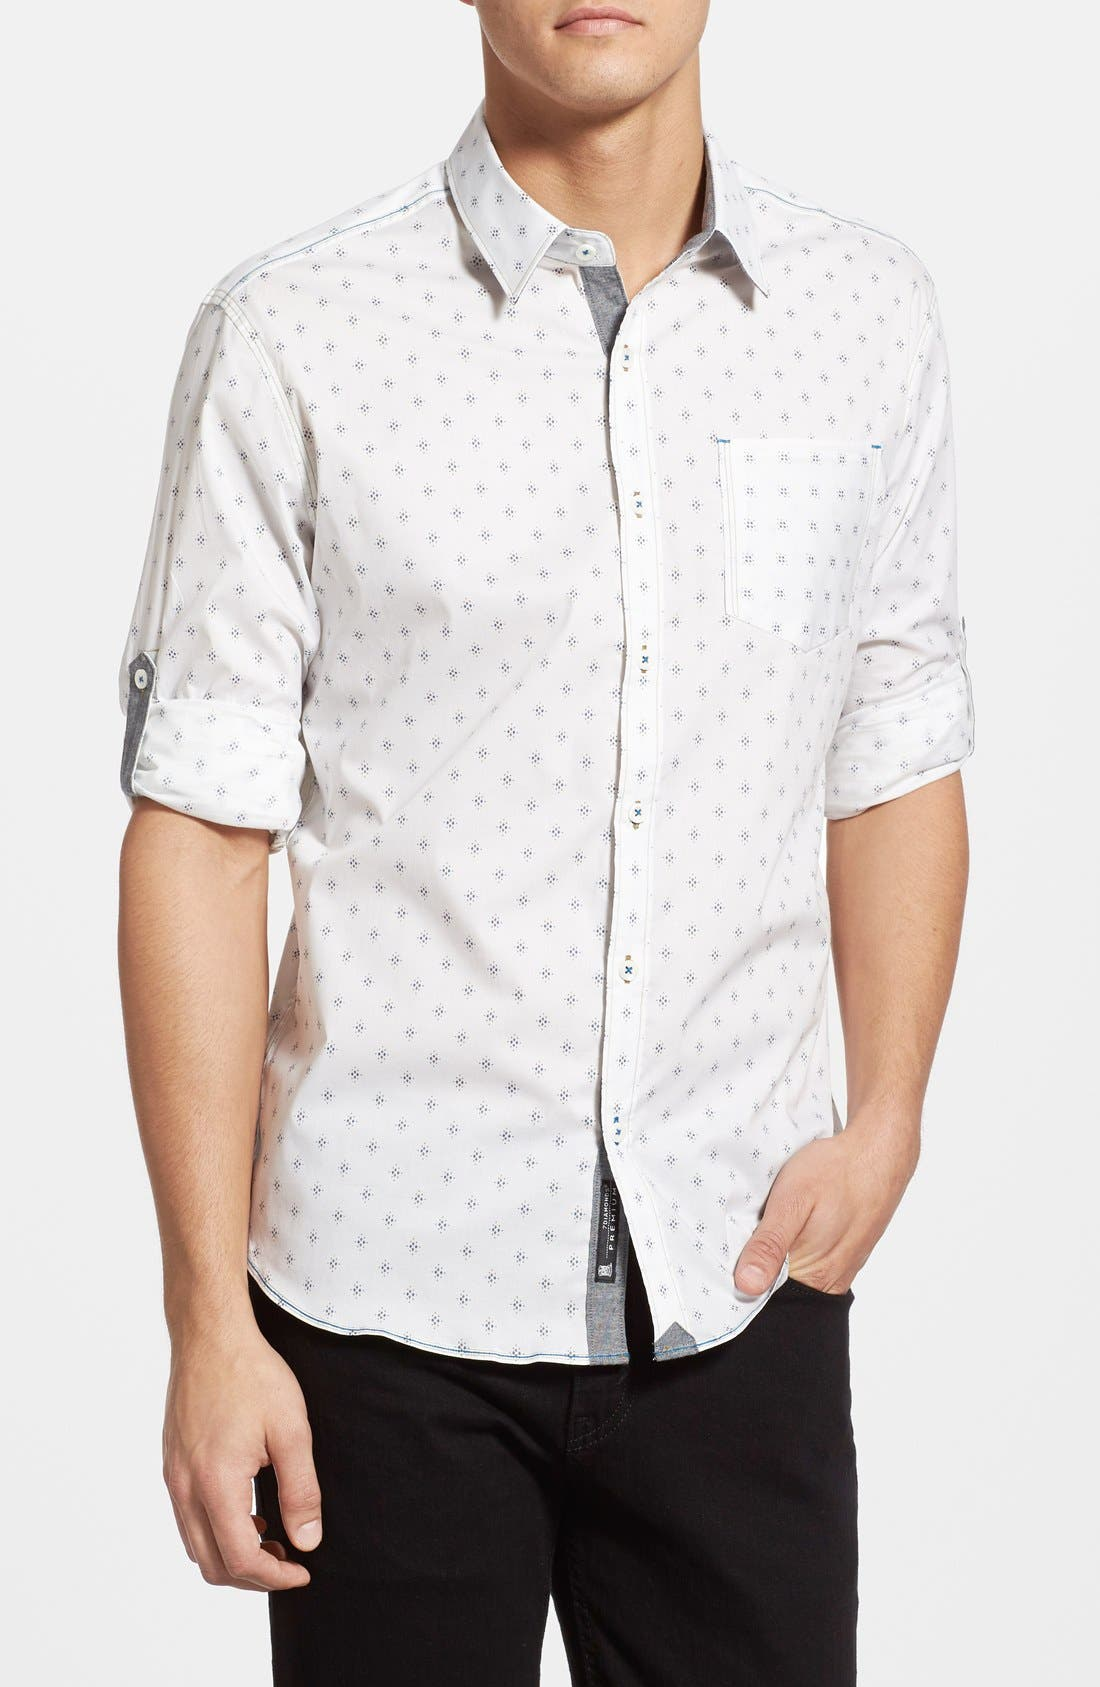 Alternate Image 1 Selected - 7 Diamonds 'Reflector' Trim Fit Woven Shirt